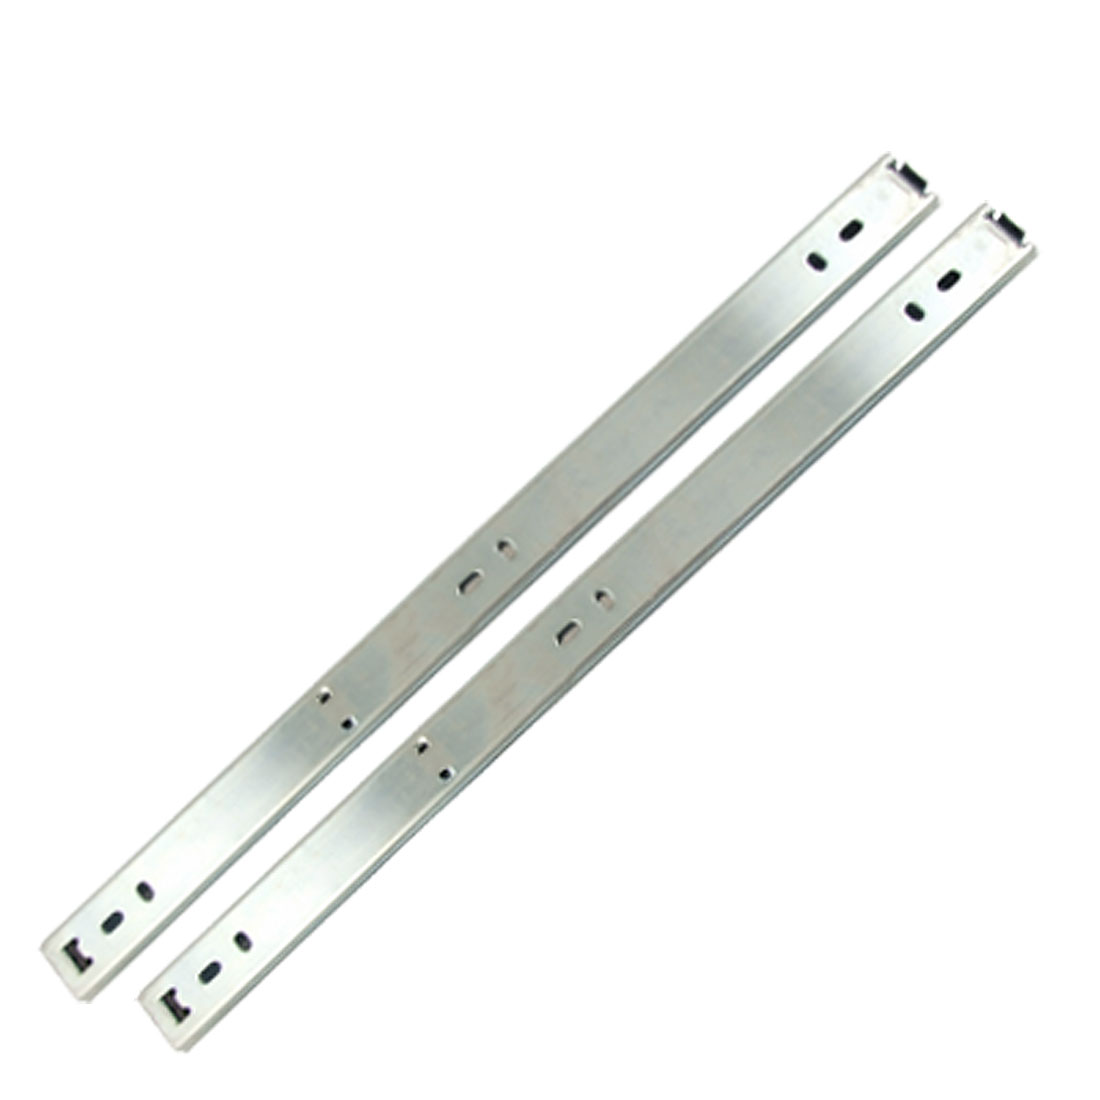 "Drawer Hardware 15"" 2-Fold Metal Ball Bearing Slides Pair"